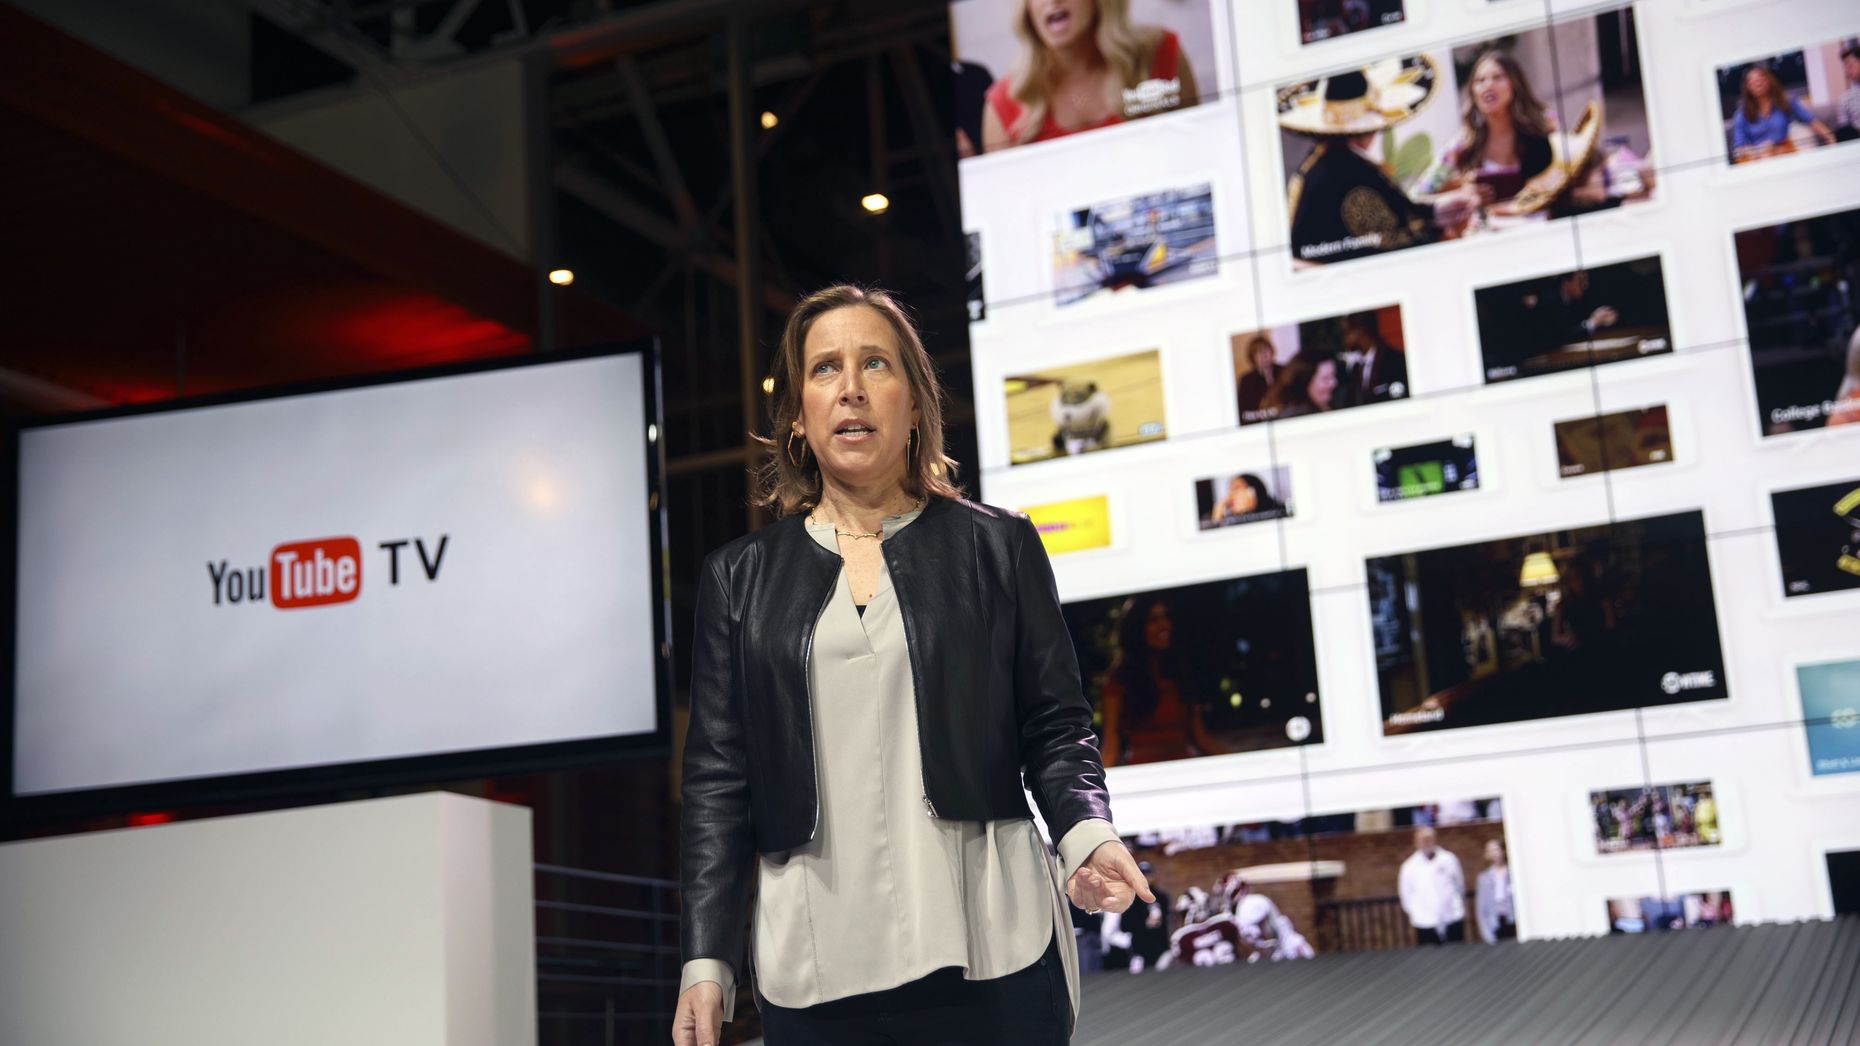 YouTube CEO Susan Wojcicki at the announcement of YouTube TV last year. Photo by Bloomberg.